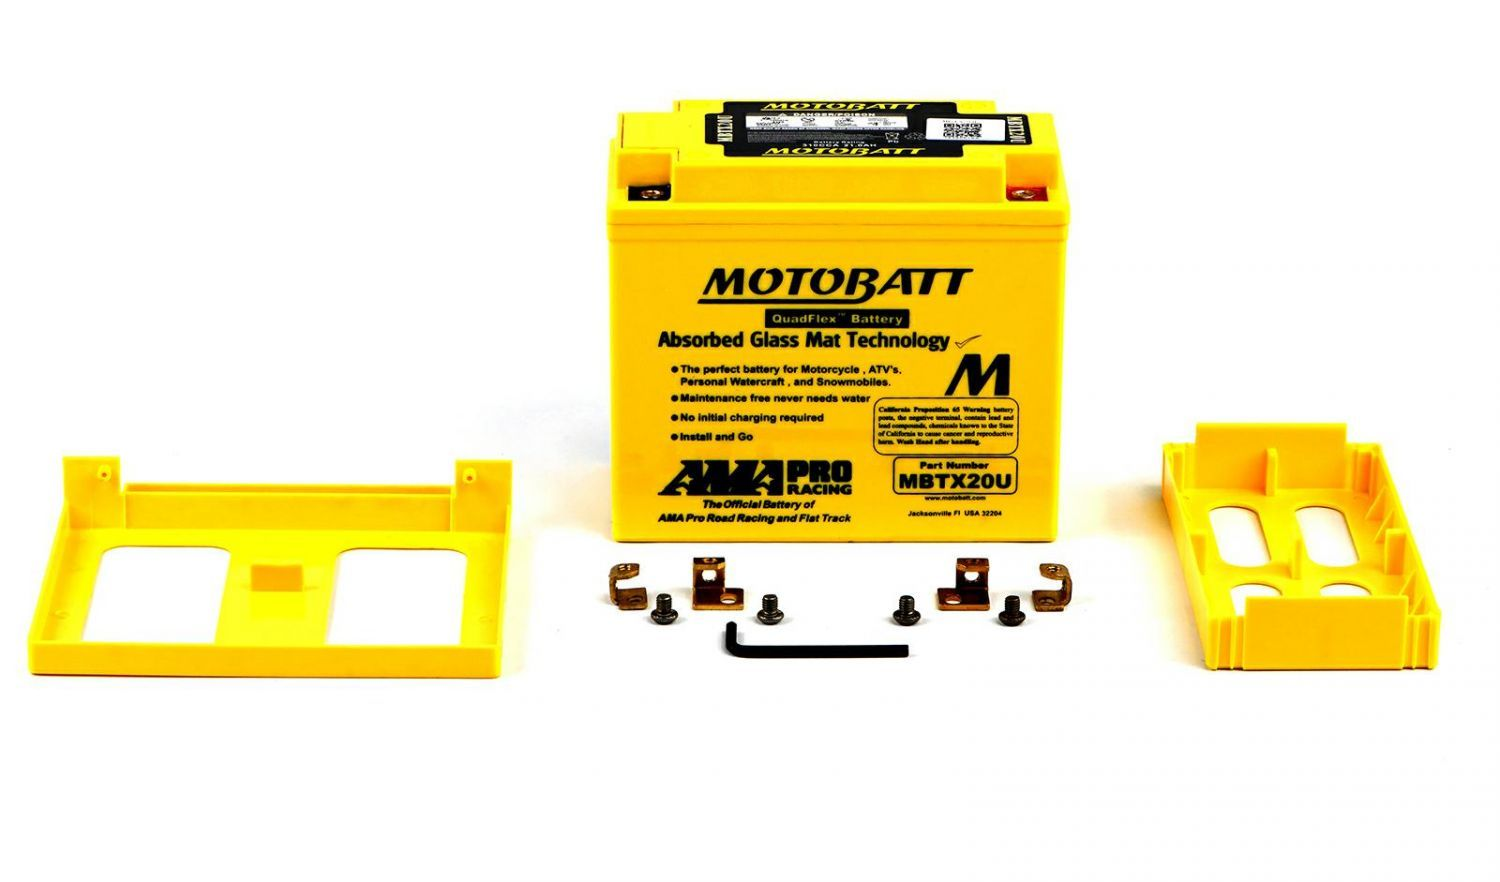 Motobatt Batteries - 501205MY image